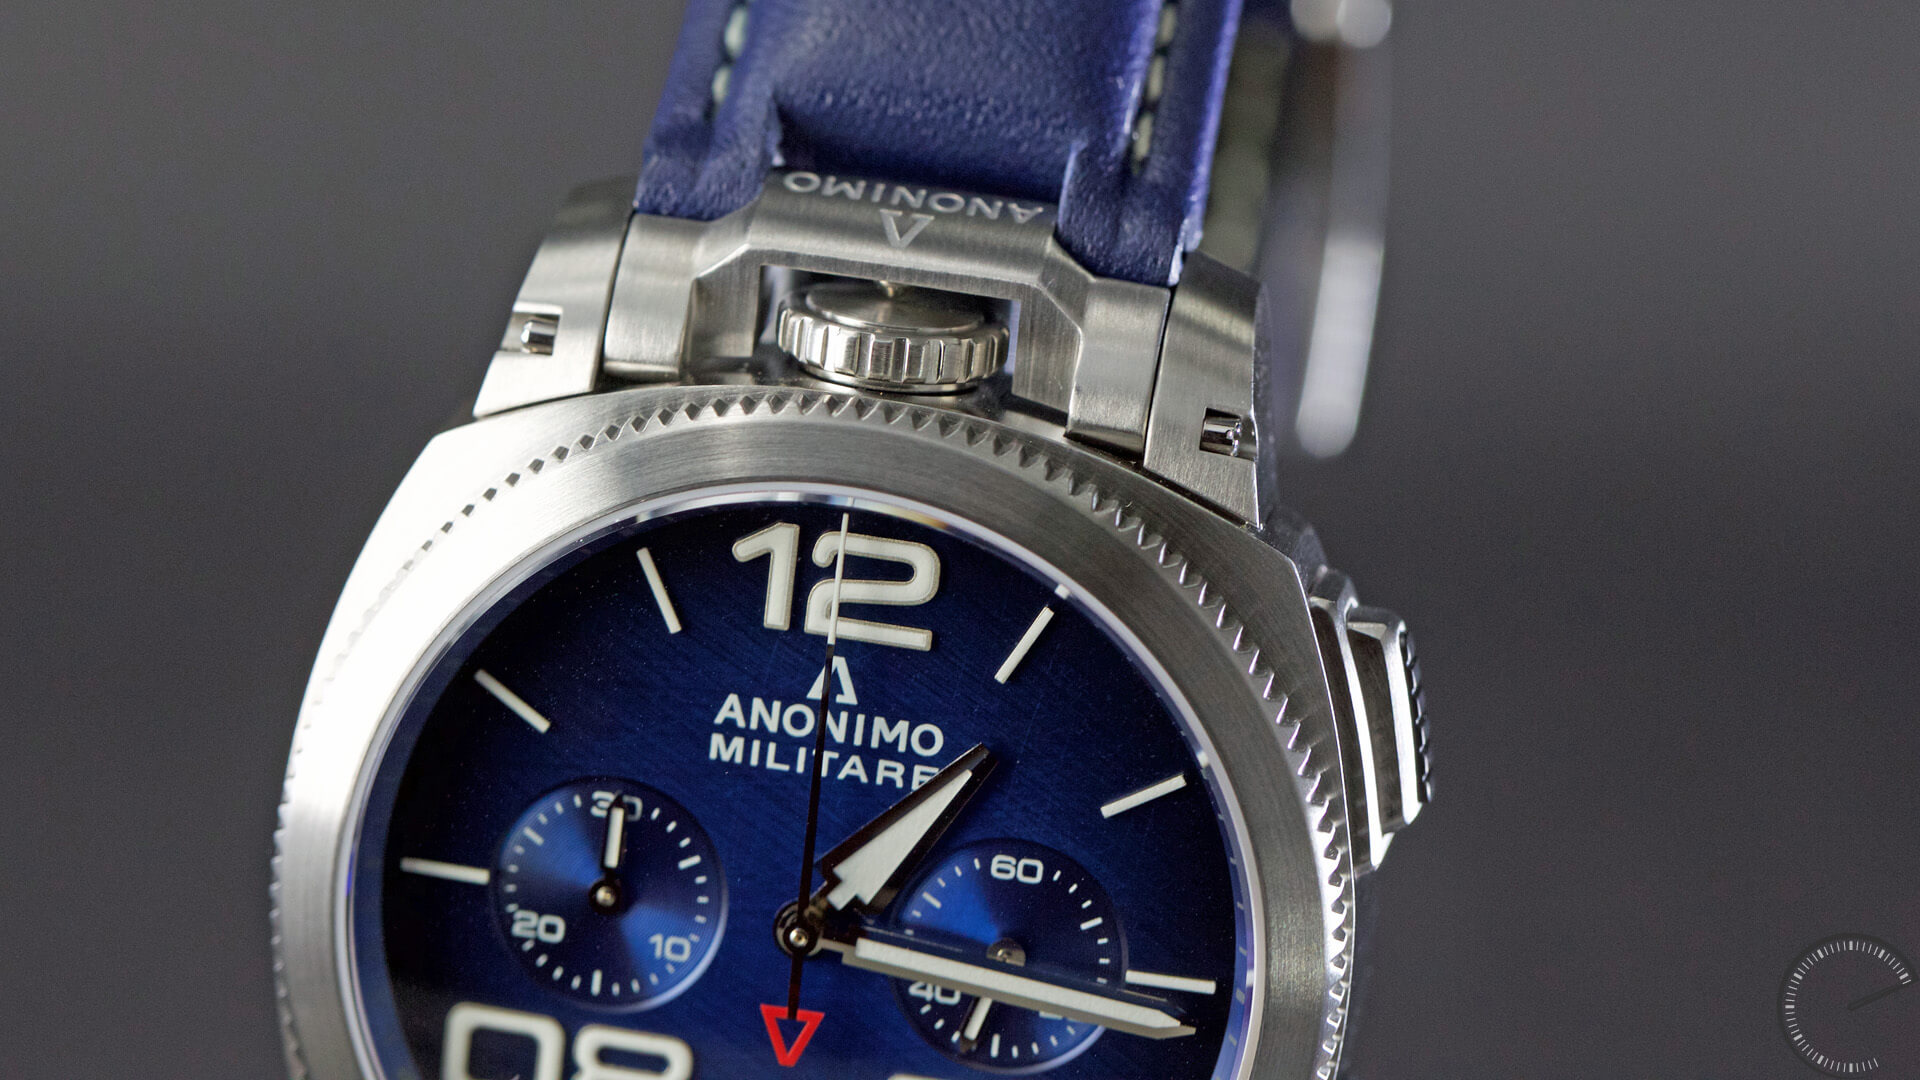 Anonimo_Militaire_Classic_Chrono_blue_dial_crown2 - ESCAPEMENT magazine - watch reviews by Angus Davies